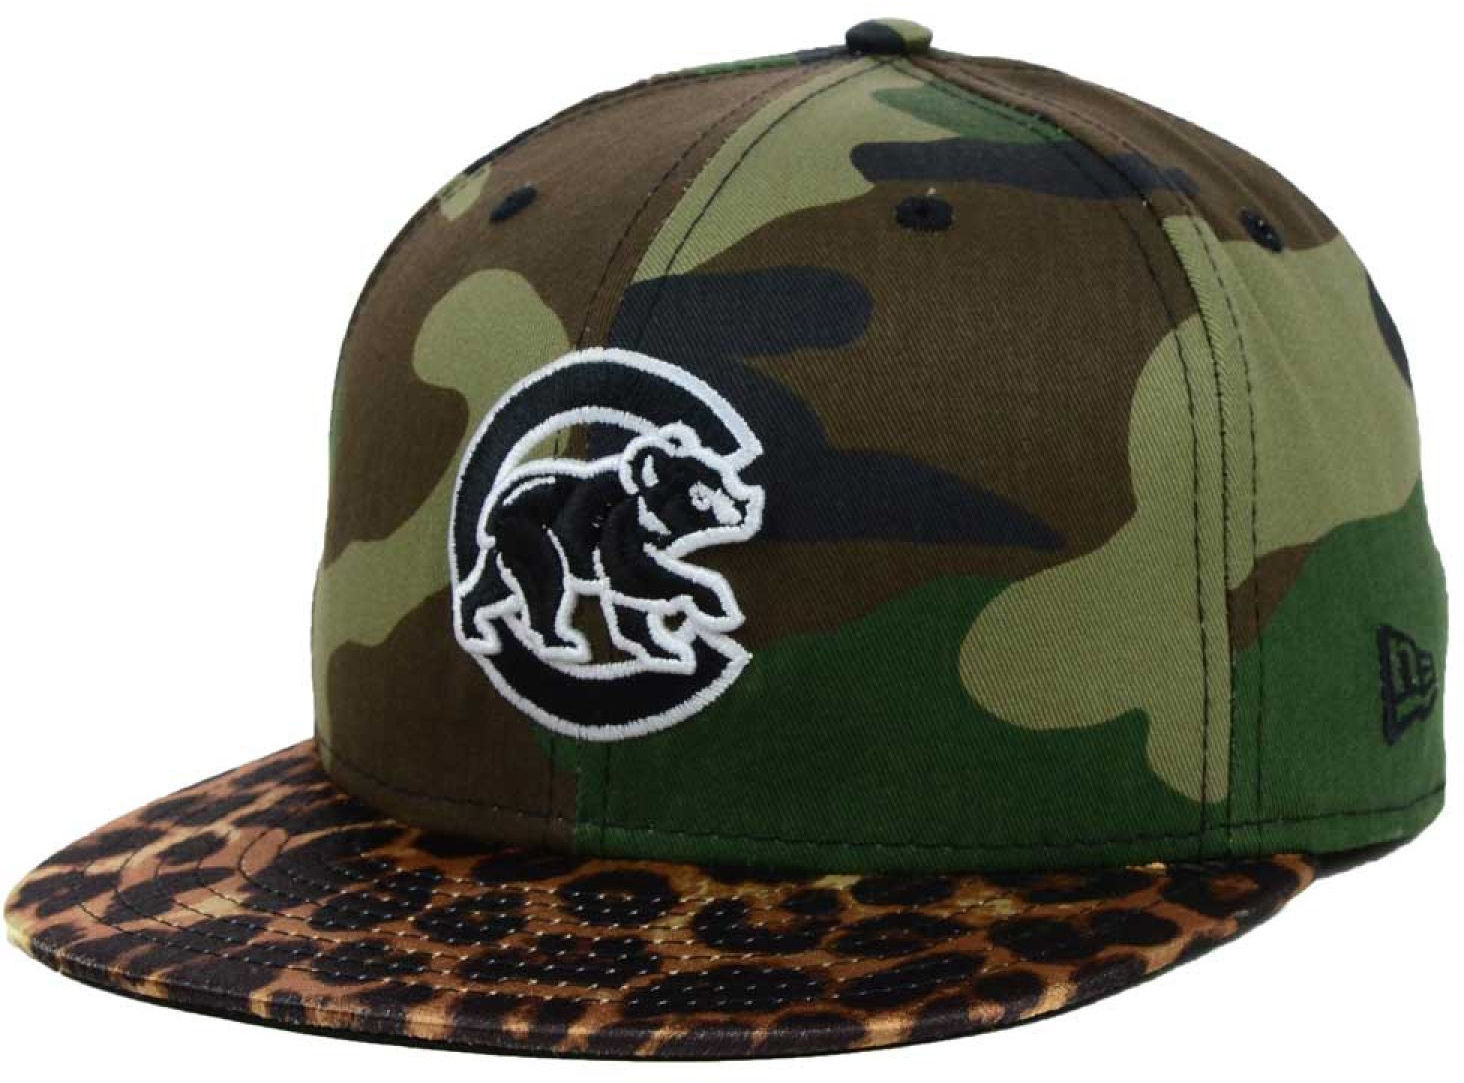 cf64dab5172 57. 57. Previous. Chicago Cubs Camo Pop Leopard Visor New Era 59Fifty  Fitted Hat Cap BEAR LOGO New · Chicago Cubs Camo Pop Leopard ...